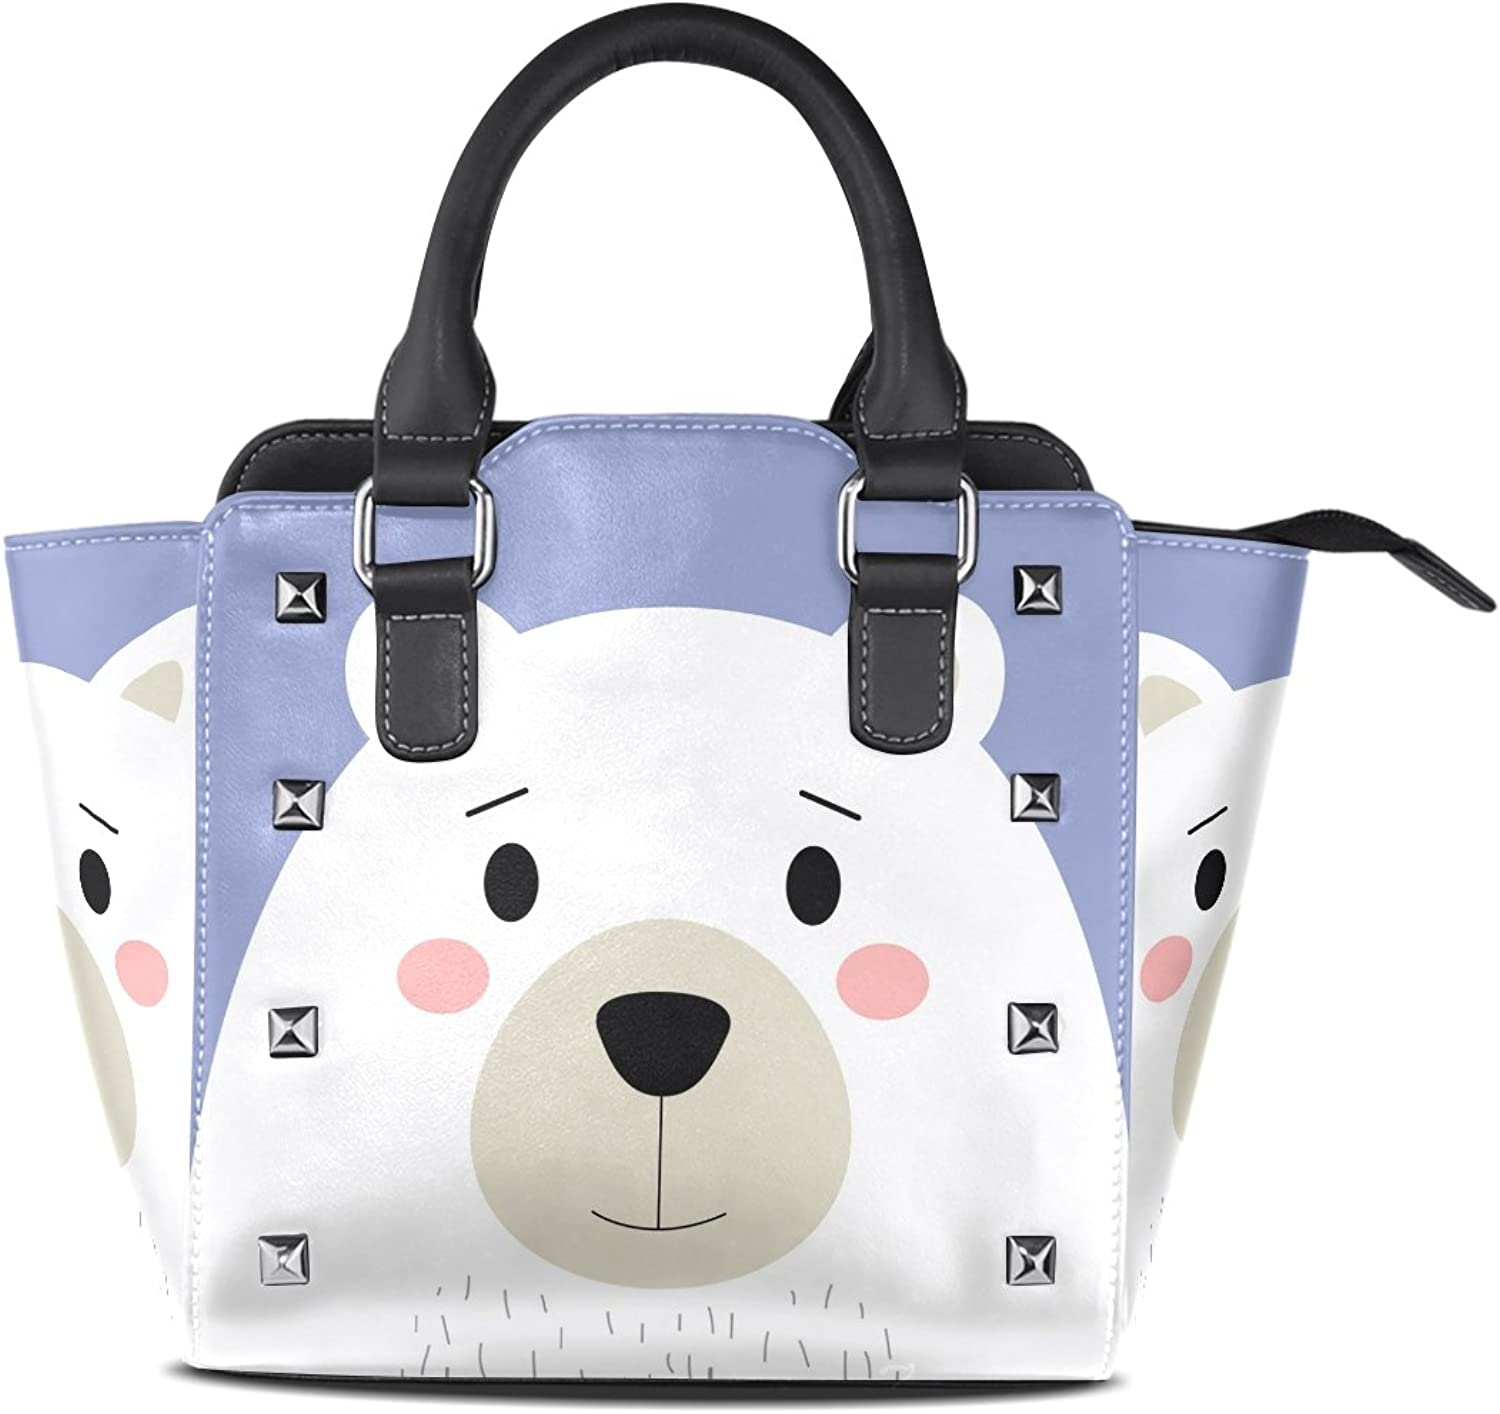 My Little Nest Women's Top Handle Satchel Handbag Cute White Polar Bear Ladies PU Leather Shoulder Bag Crossbody Bag